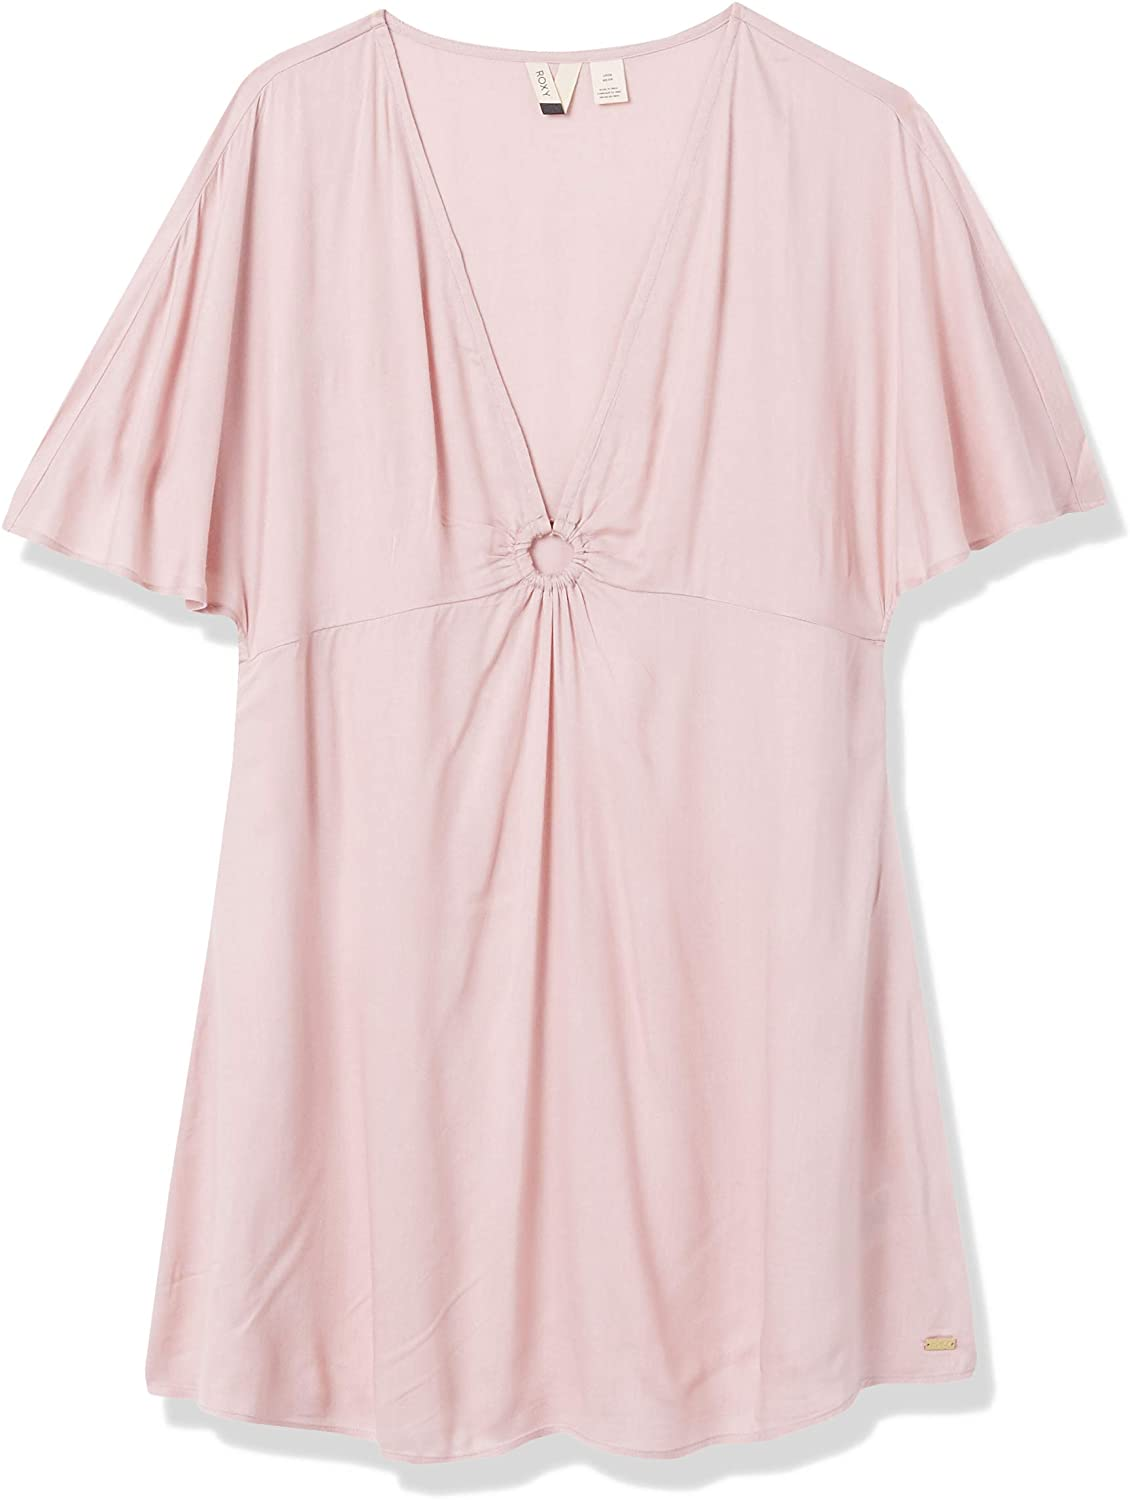 Roxy Women's Timeless Lover Cover-up Dress